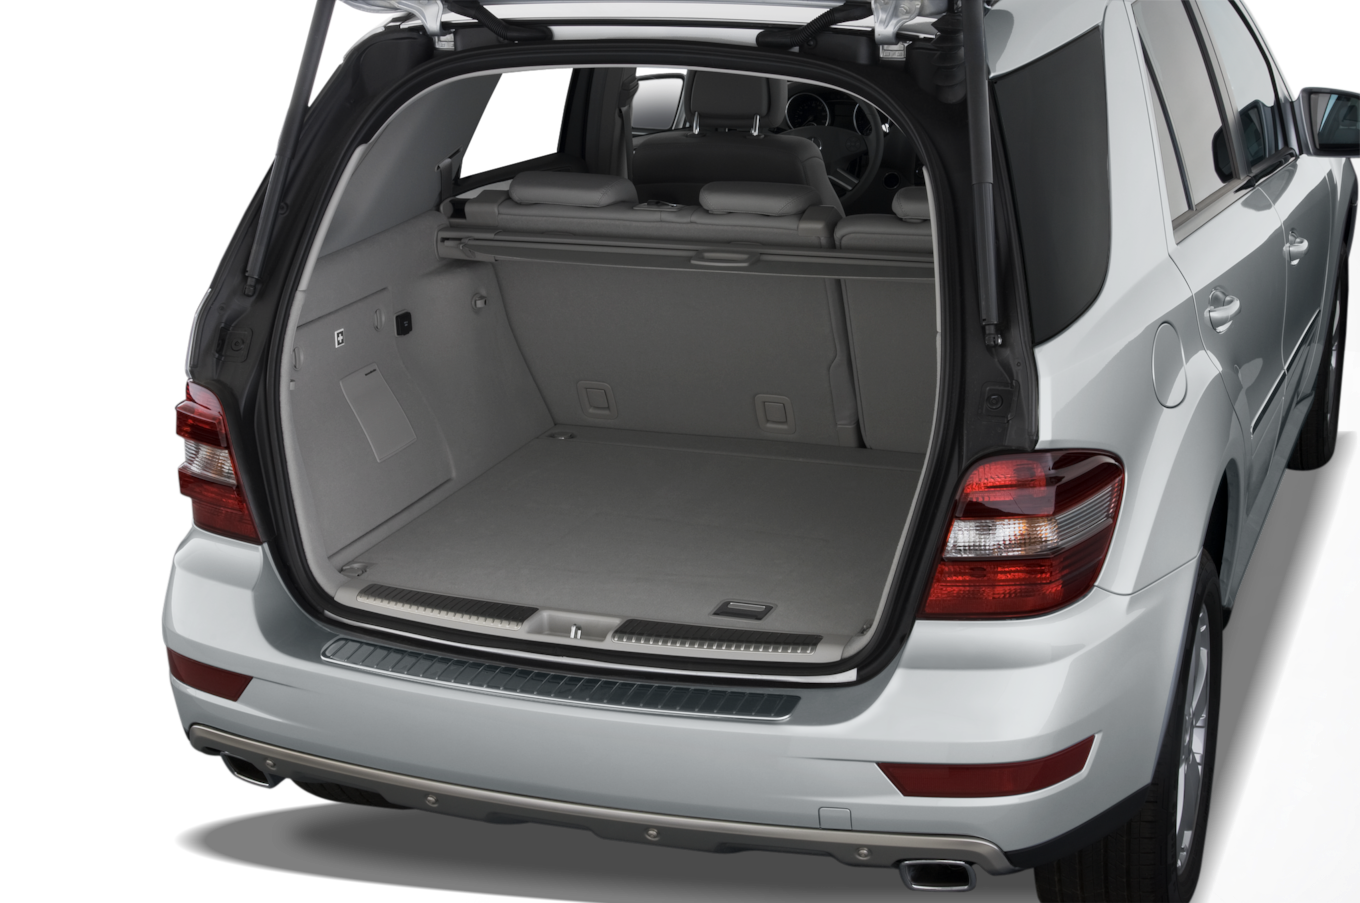 2010 Mercedes-Benz M-Class Reviews and Rating | Motor Trend